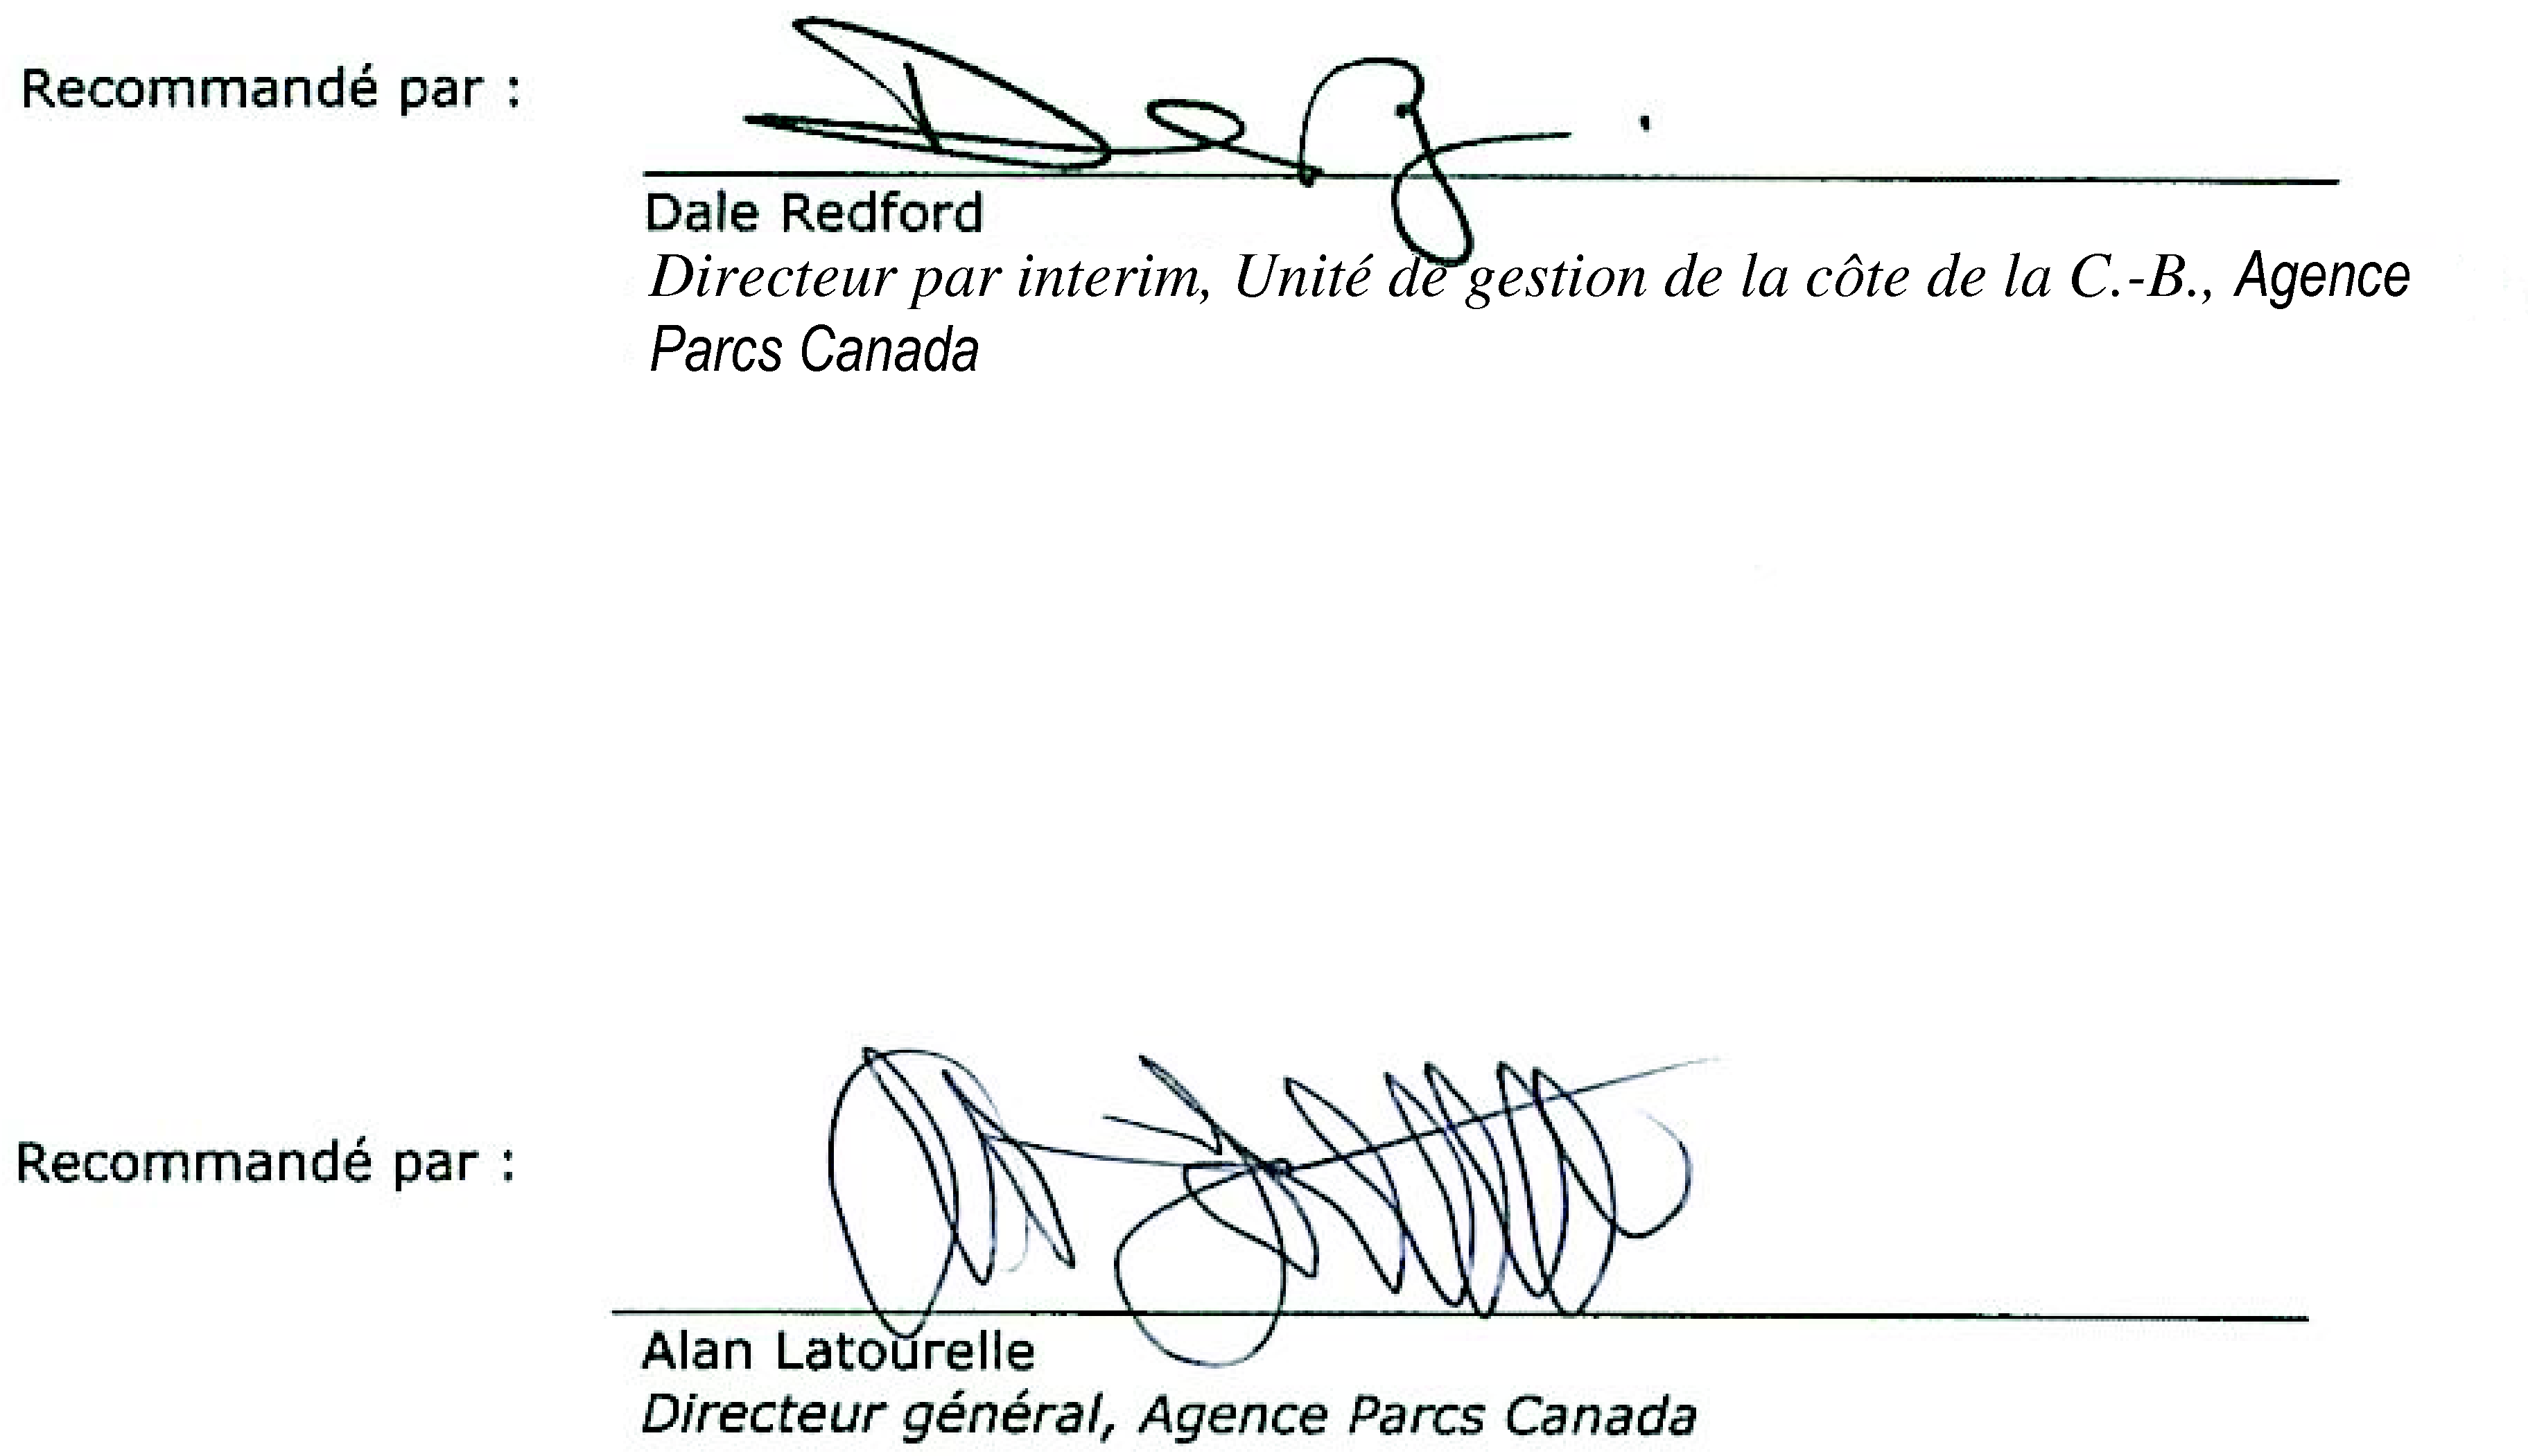 questions pertaining the document gc.ca